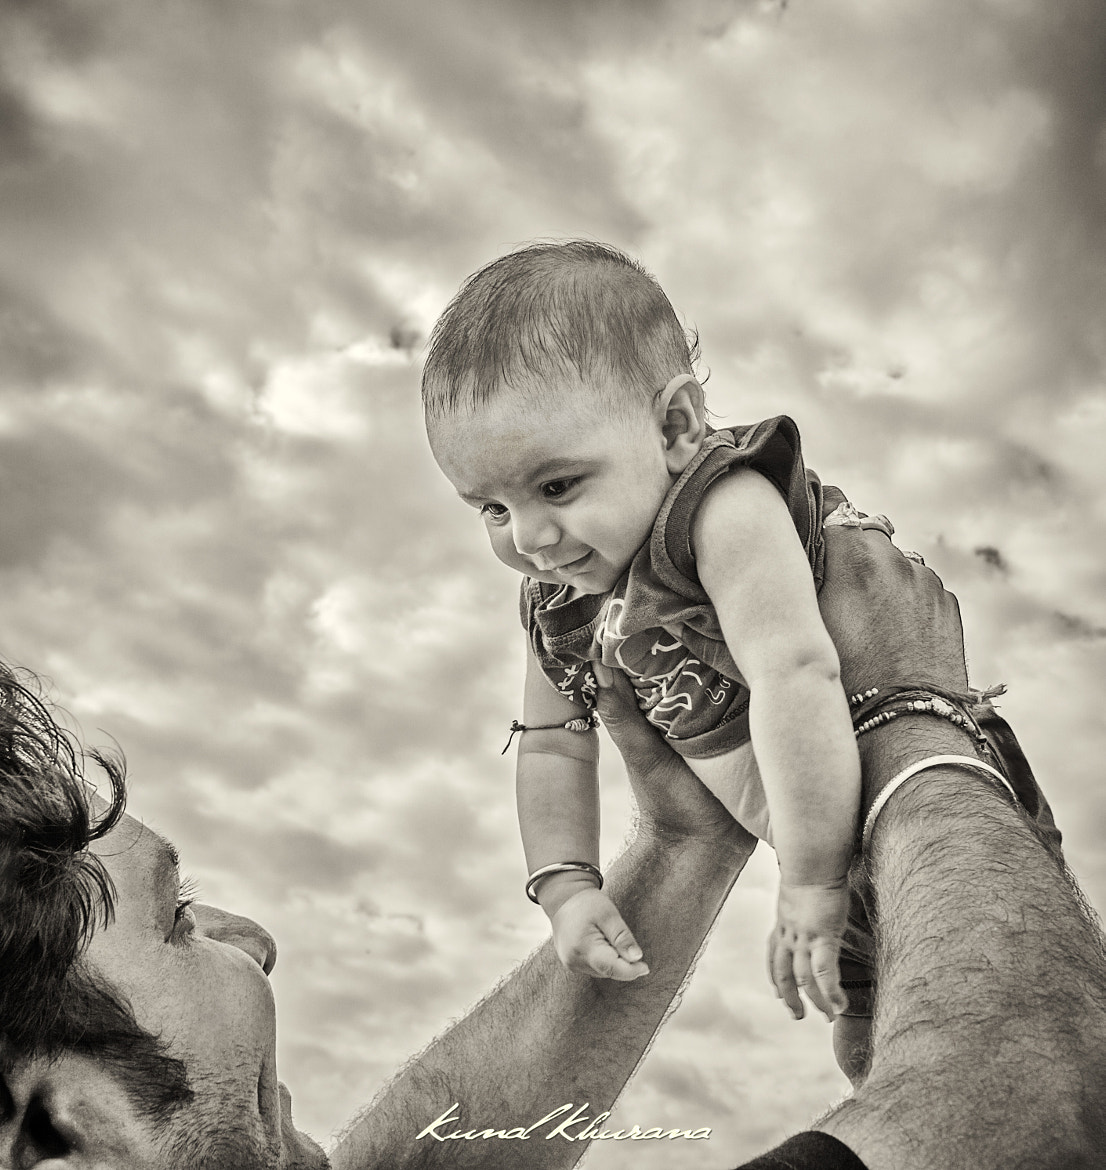 Photograph Innocence Unplugged III by Kunal Khurana on 500px